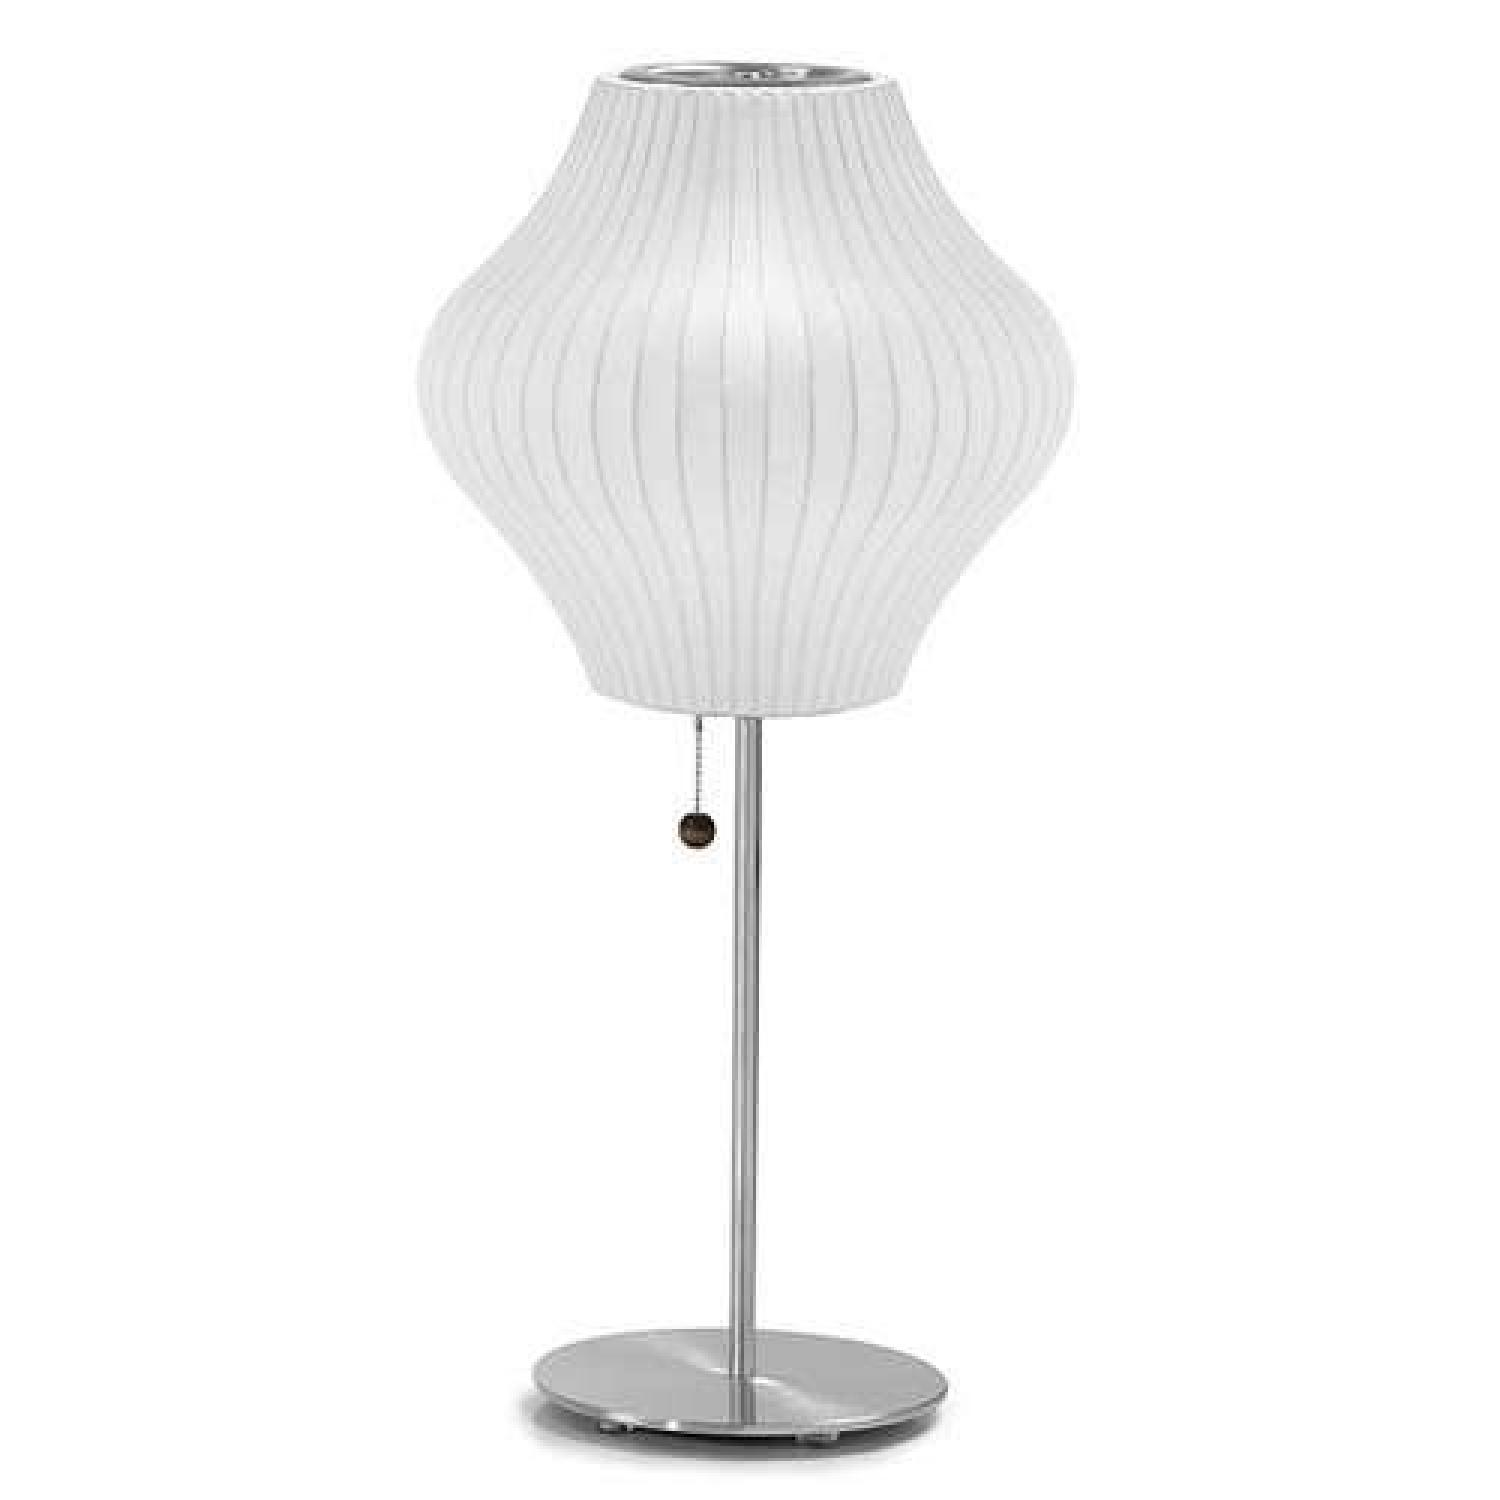 George Nelson Bubble Lotus Pear Table Lamp W/ Nickel Base ...